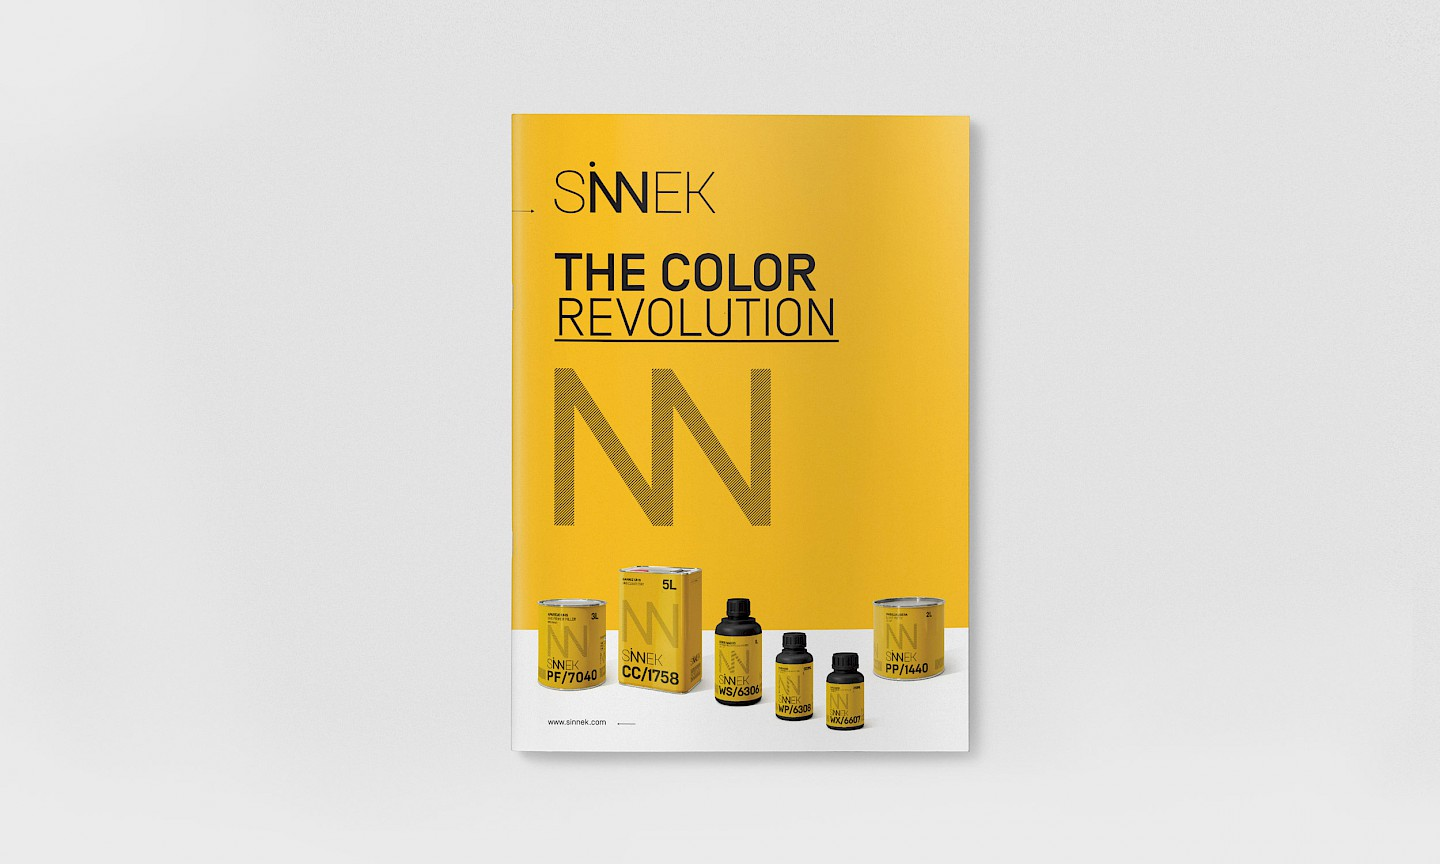 move catalogo sinnek branding